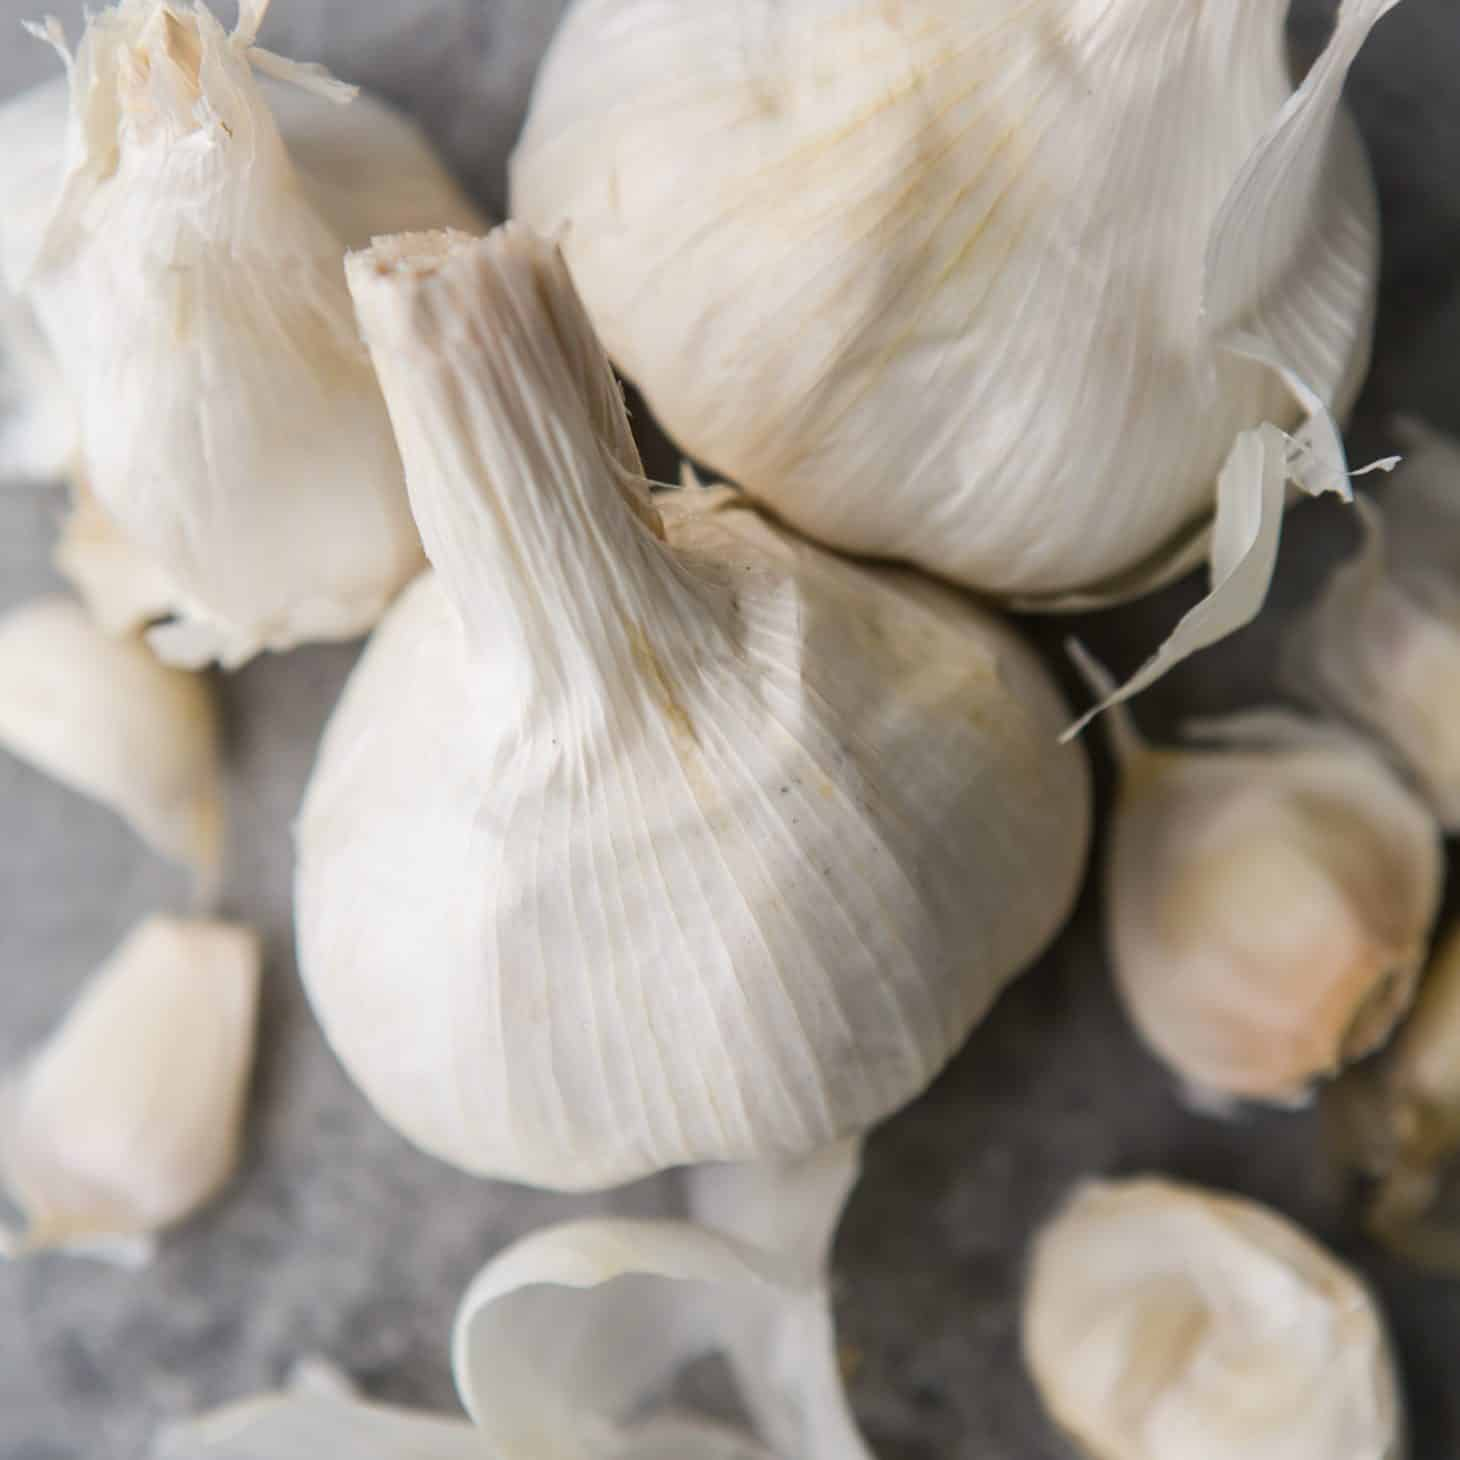 Garlic - Explore an Ingredient - Naturally Ella